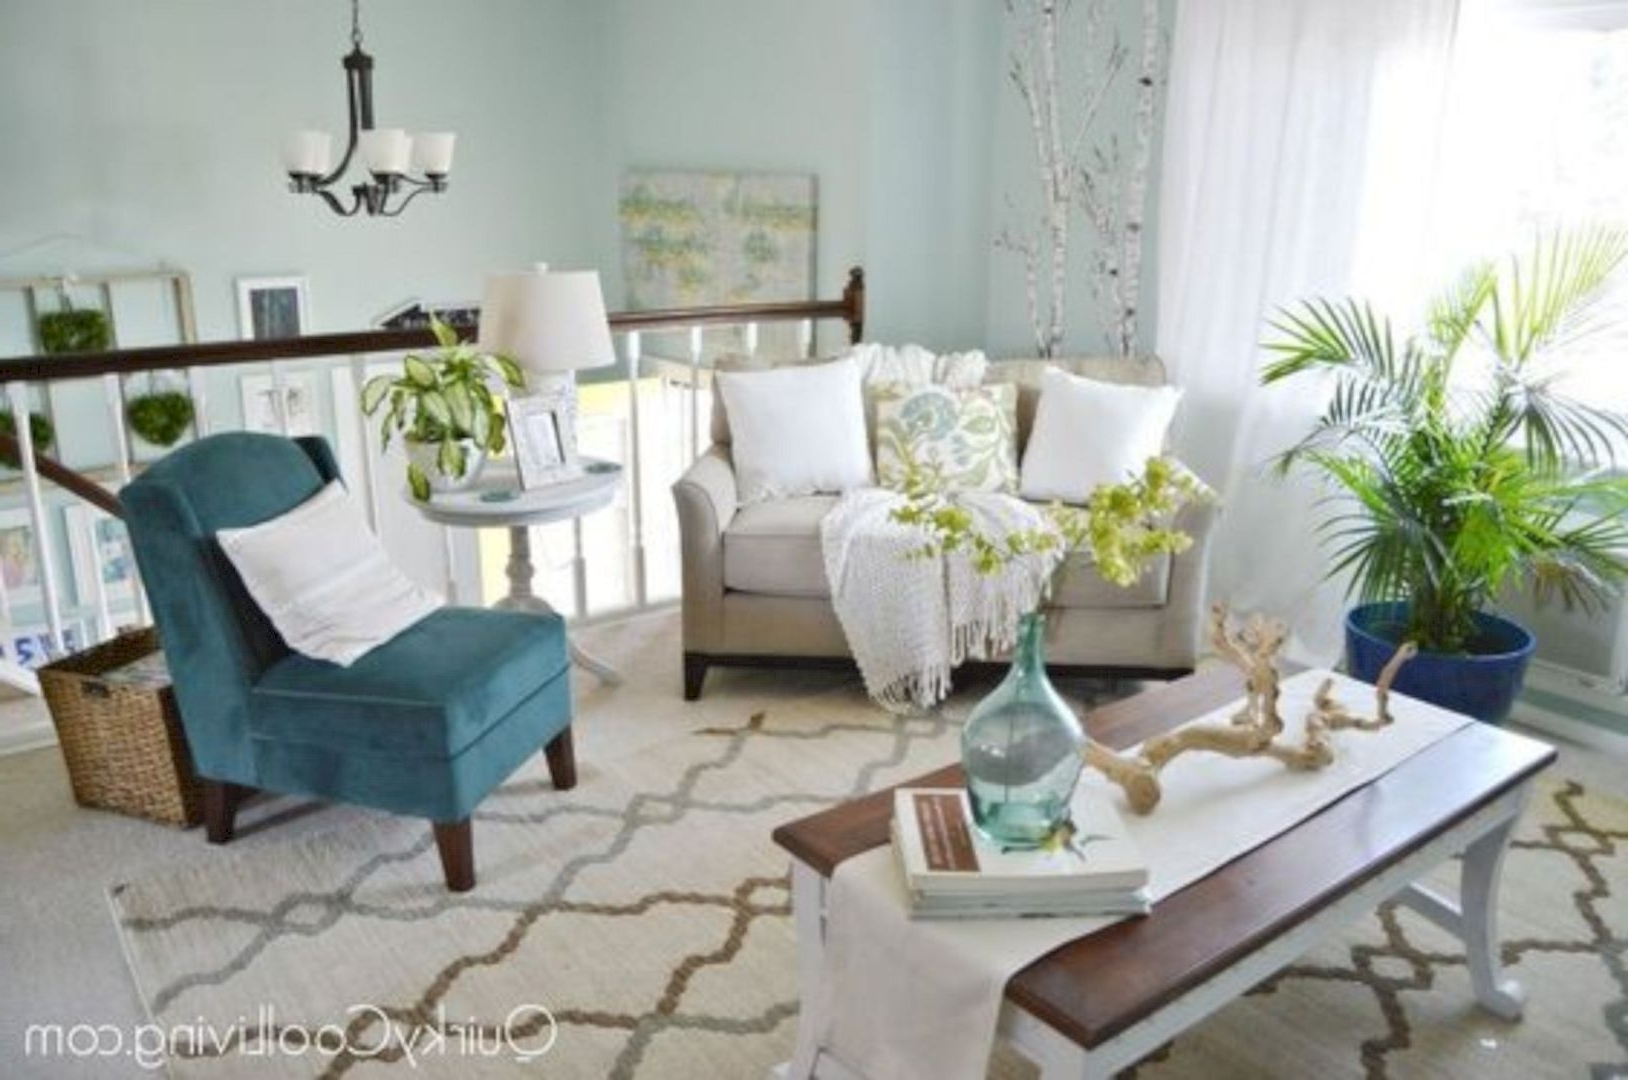 15 Top Raised Ranch Interior Design Ideas To Steal | Living 10+ Raised Ranch Living Room Ideas